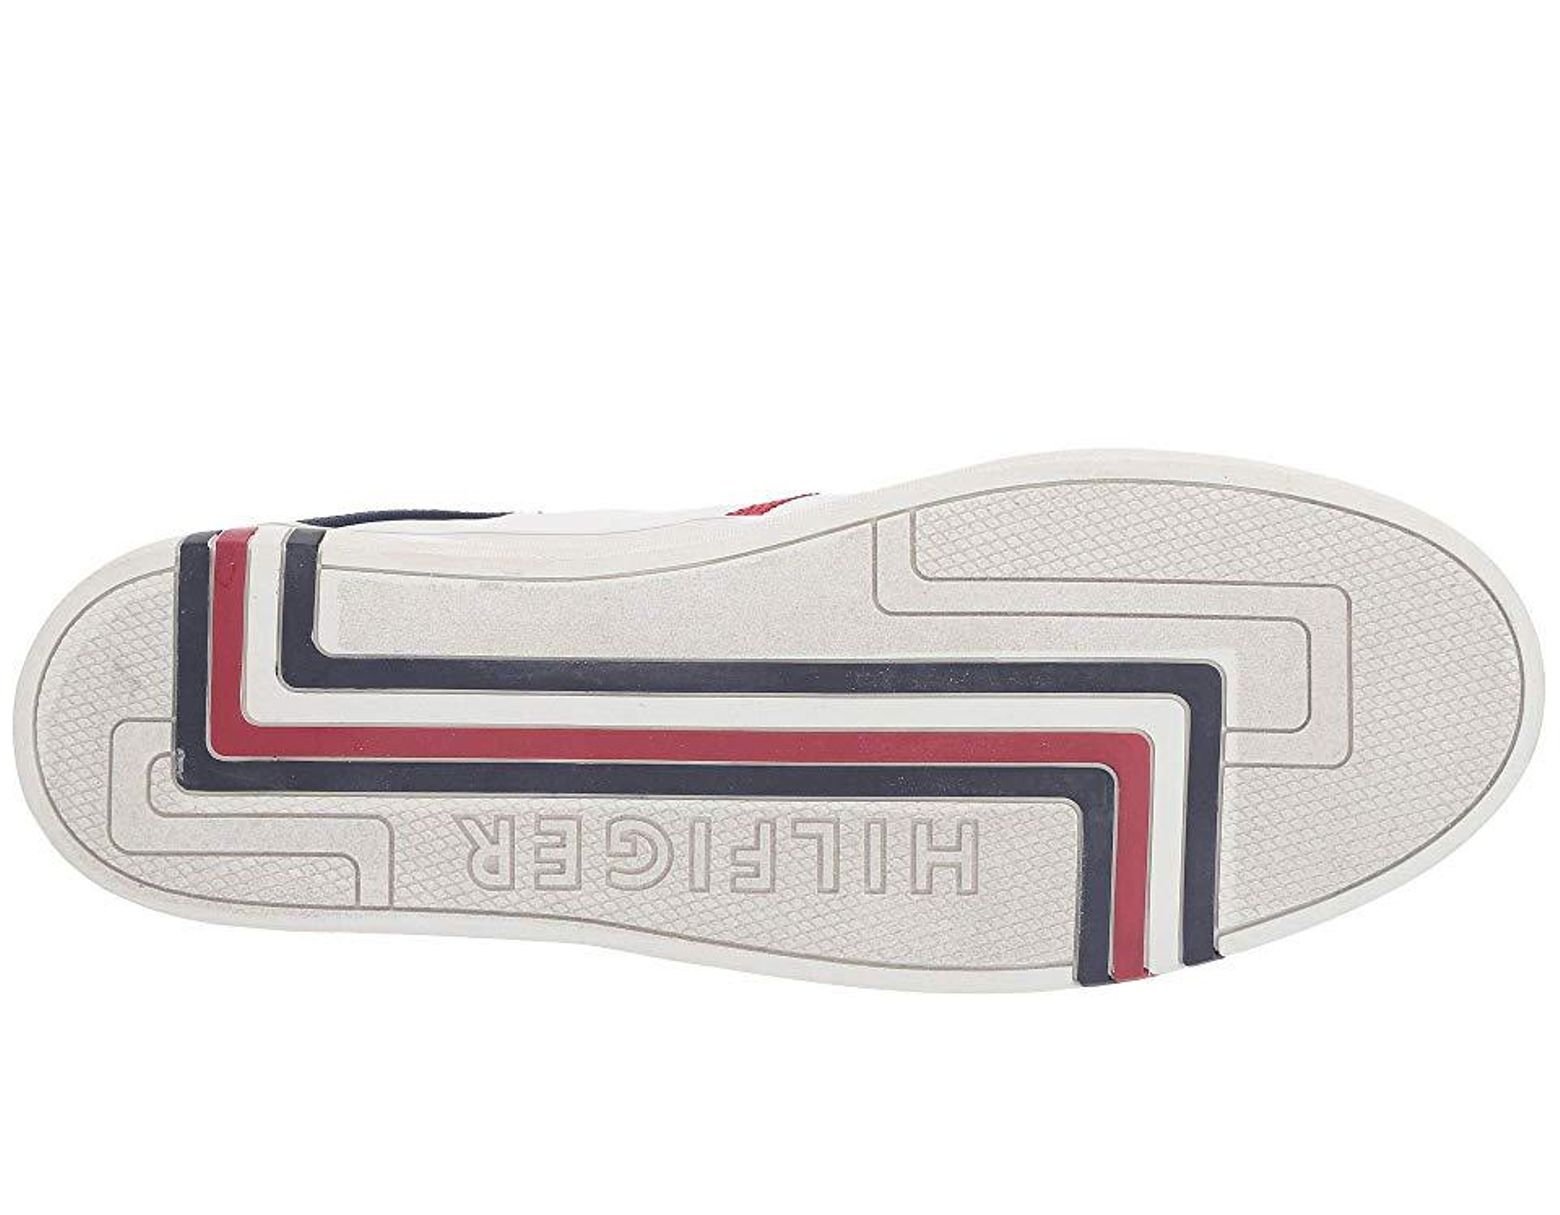 1d50c329 Tommy Hilfiger Japan (white) Shoes in White for Men - Save 61% - Lyst